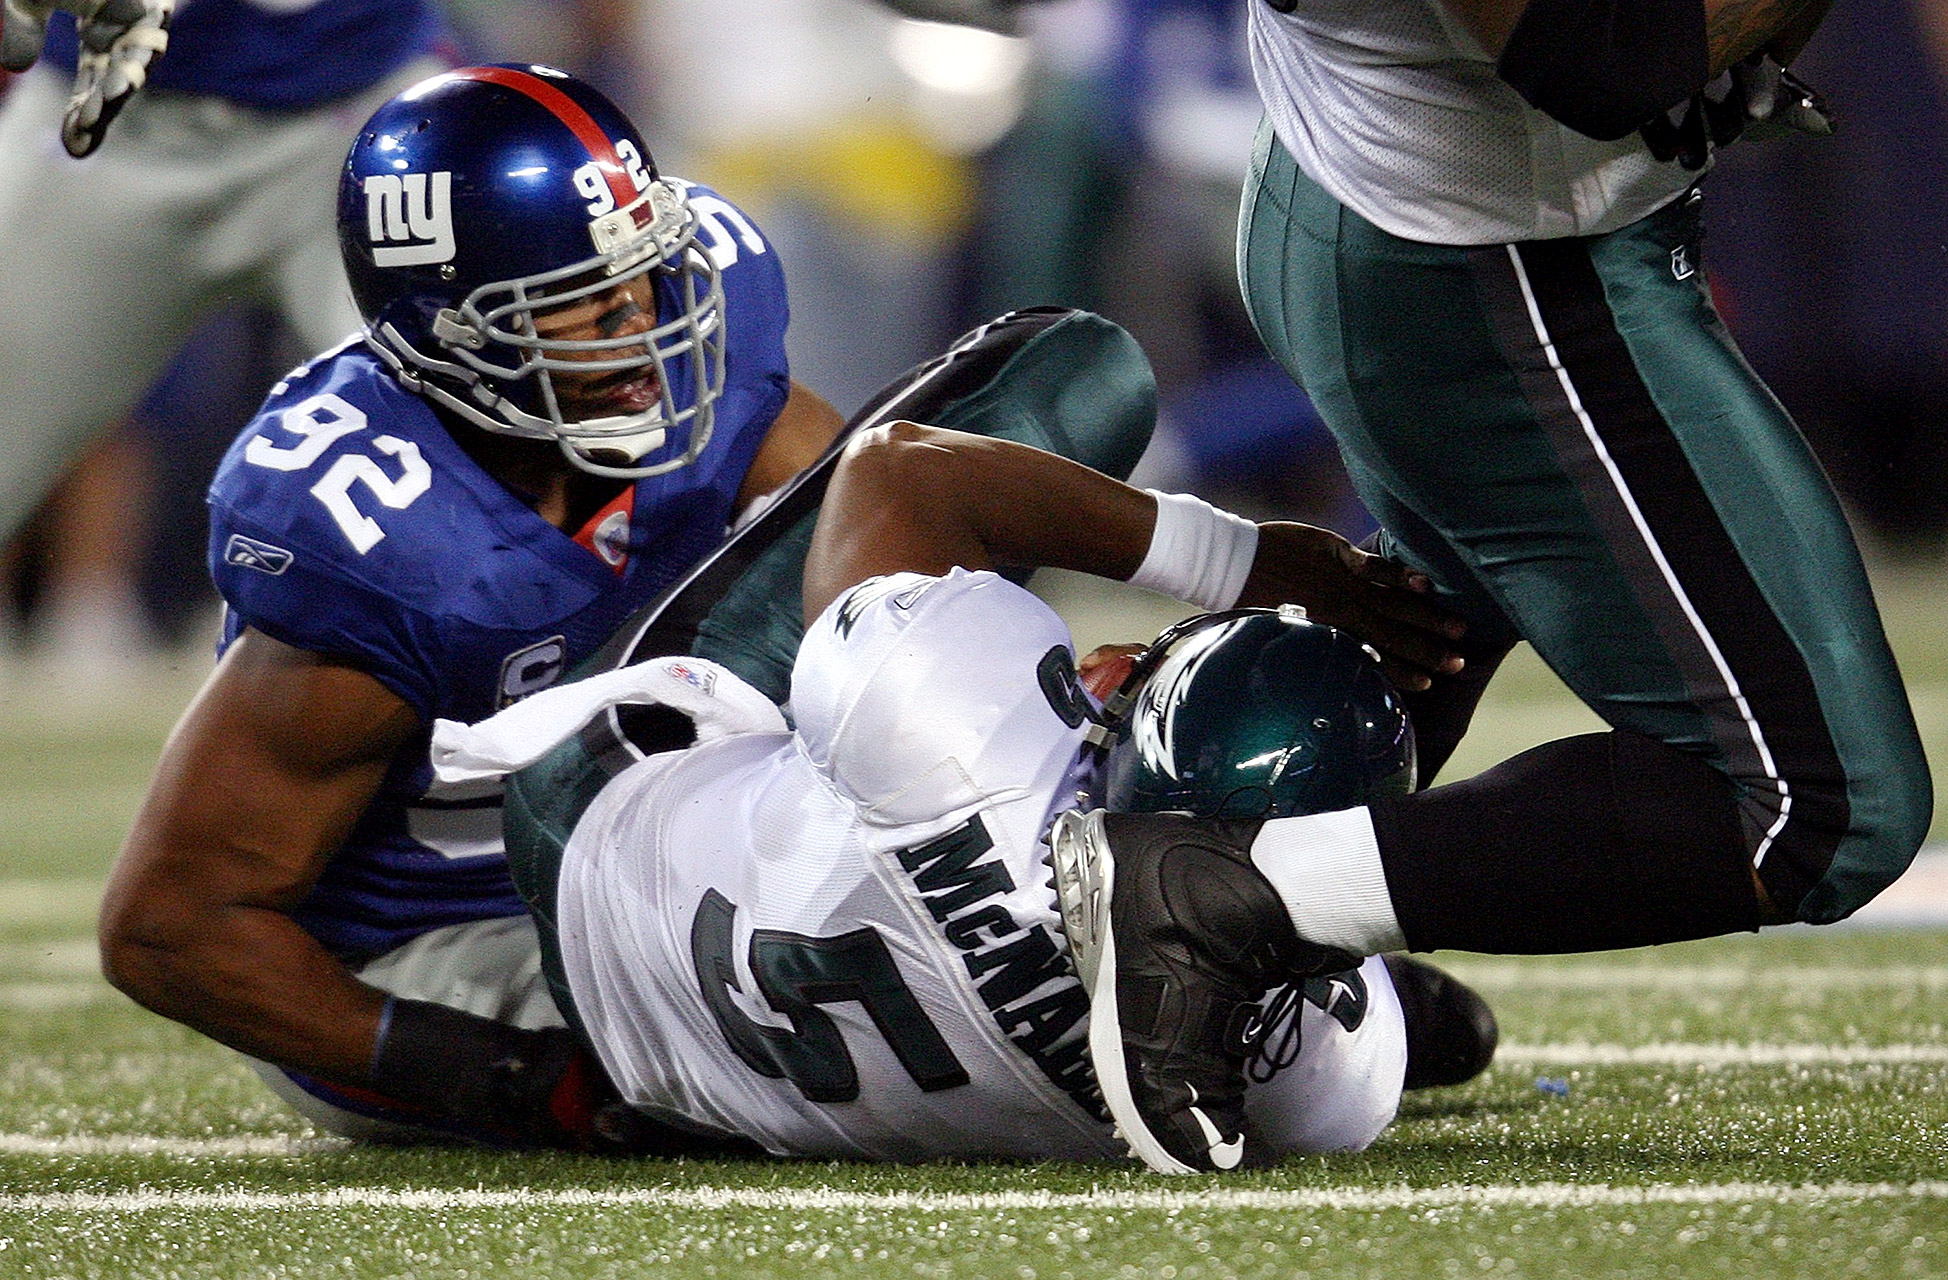 Michael Strahan became the Giants' all-time sack leader when he brought down Donovan McNabb on Sept. 30, 2007. The two later appeared in a Dr Pepper commercial together.